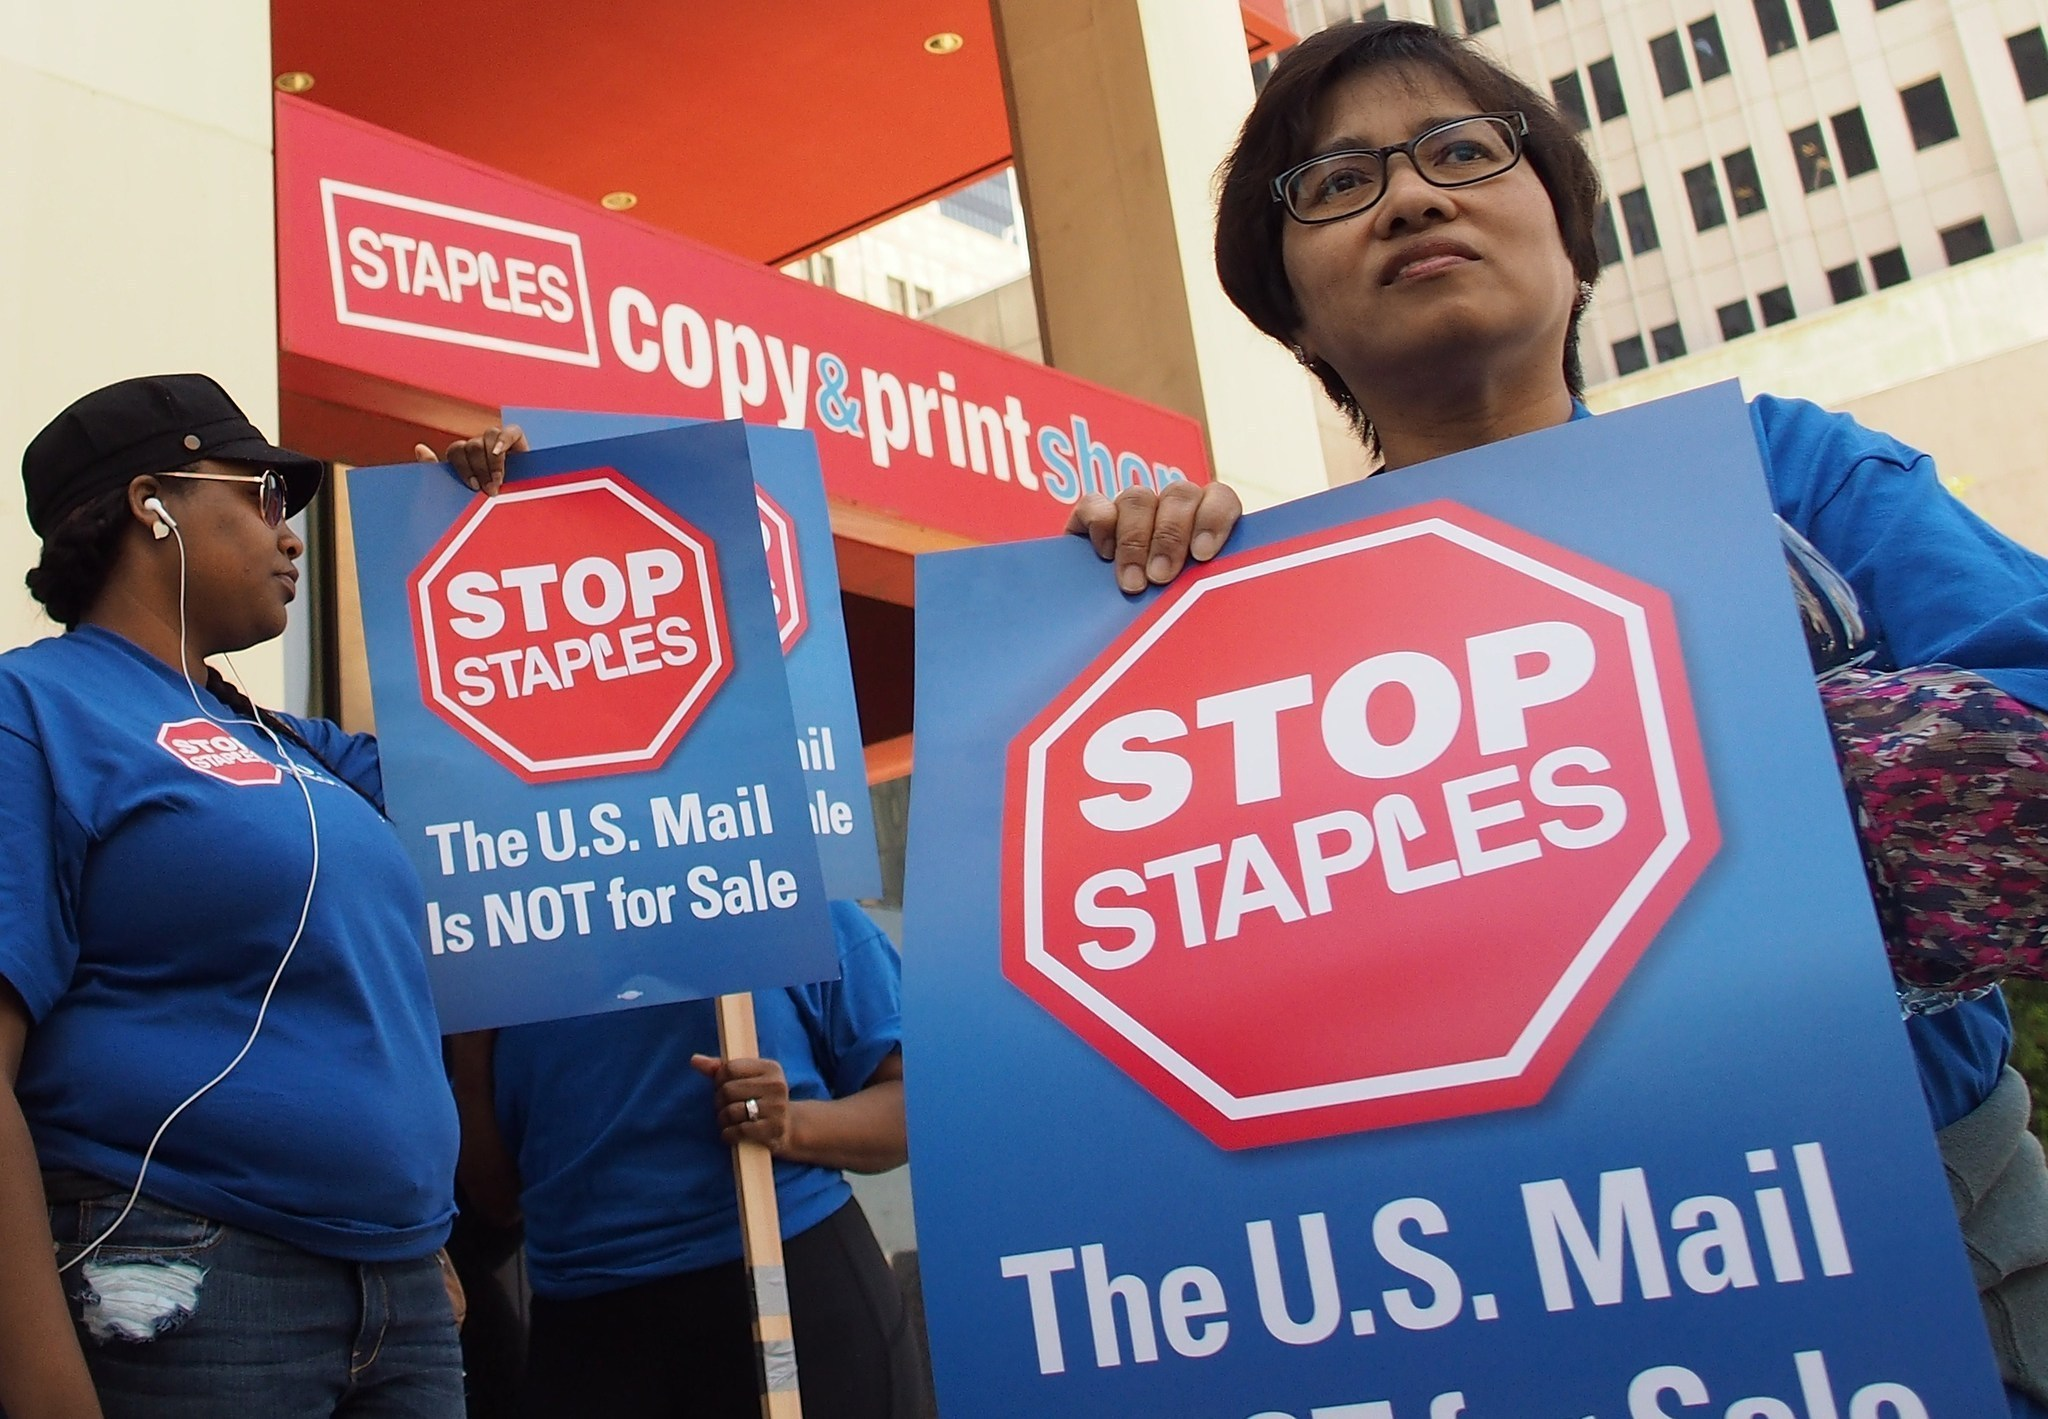 Big Win For Postal Service Employees… Don't Buy Staples!